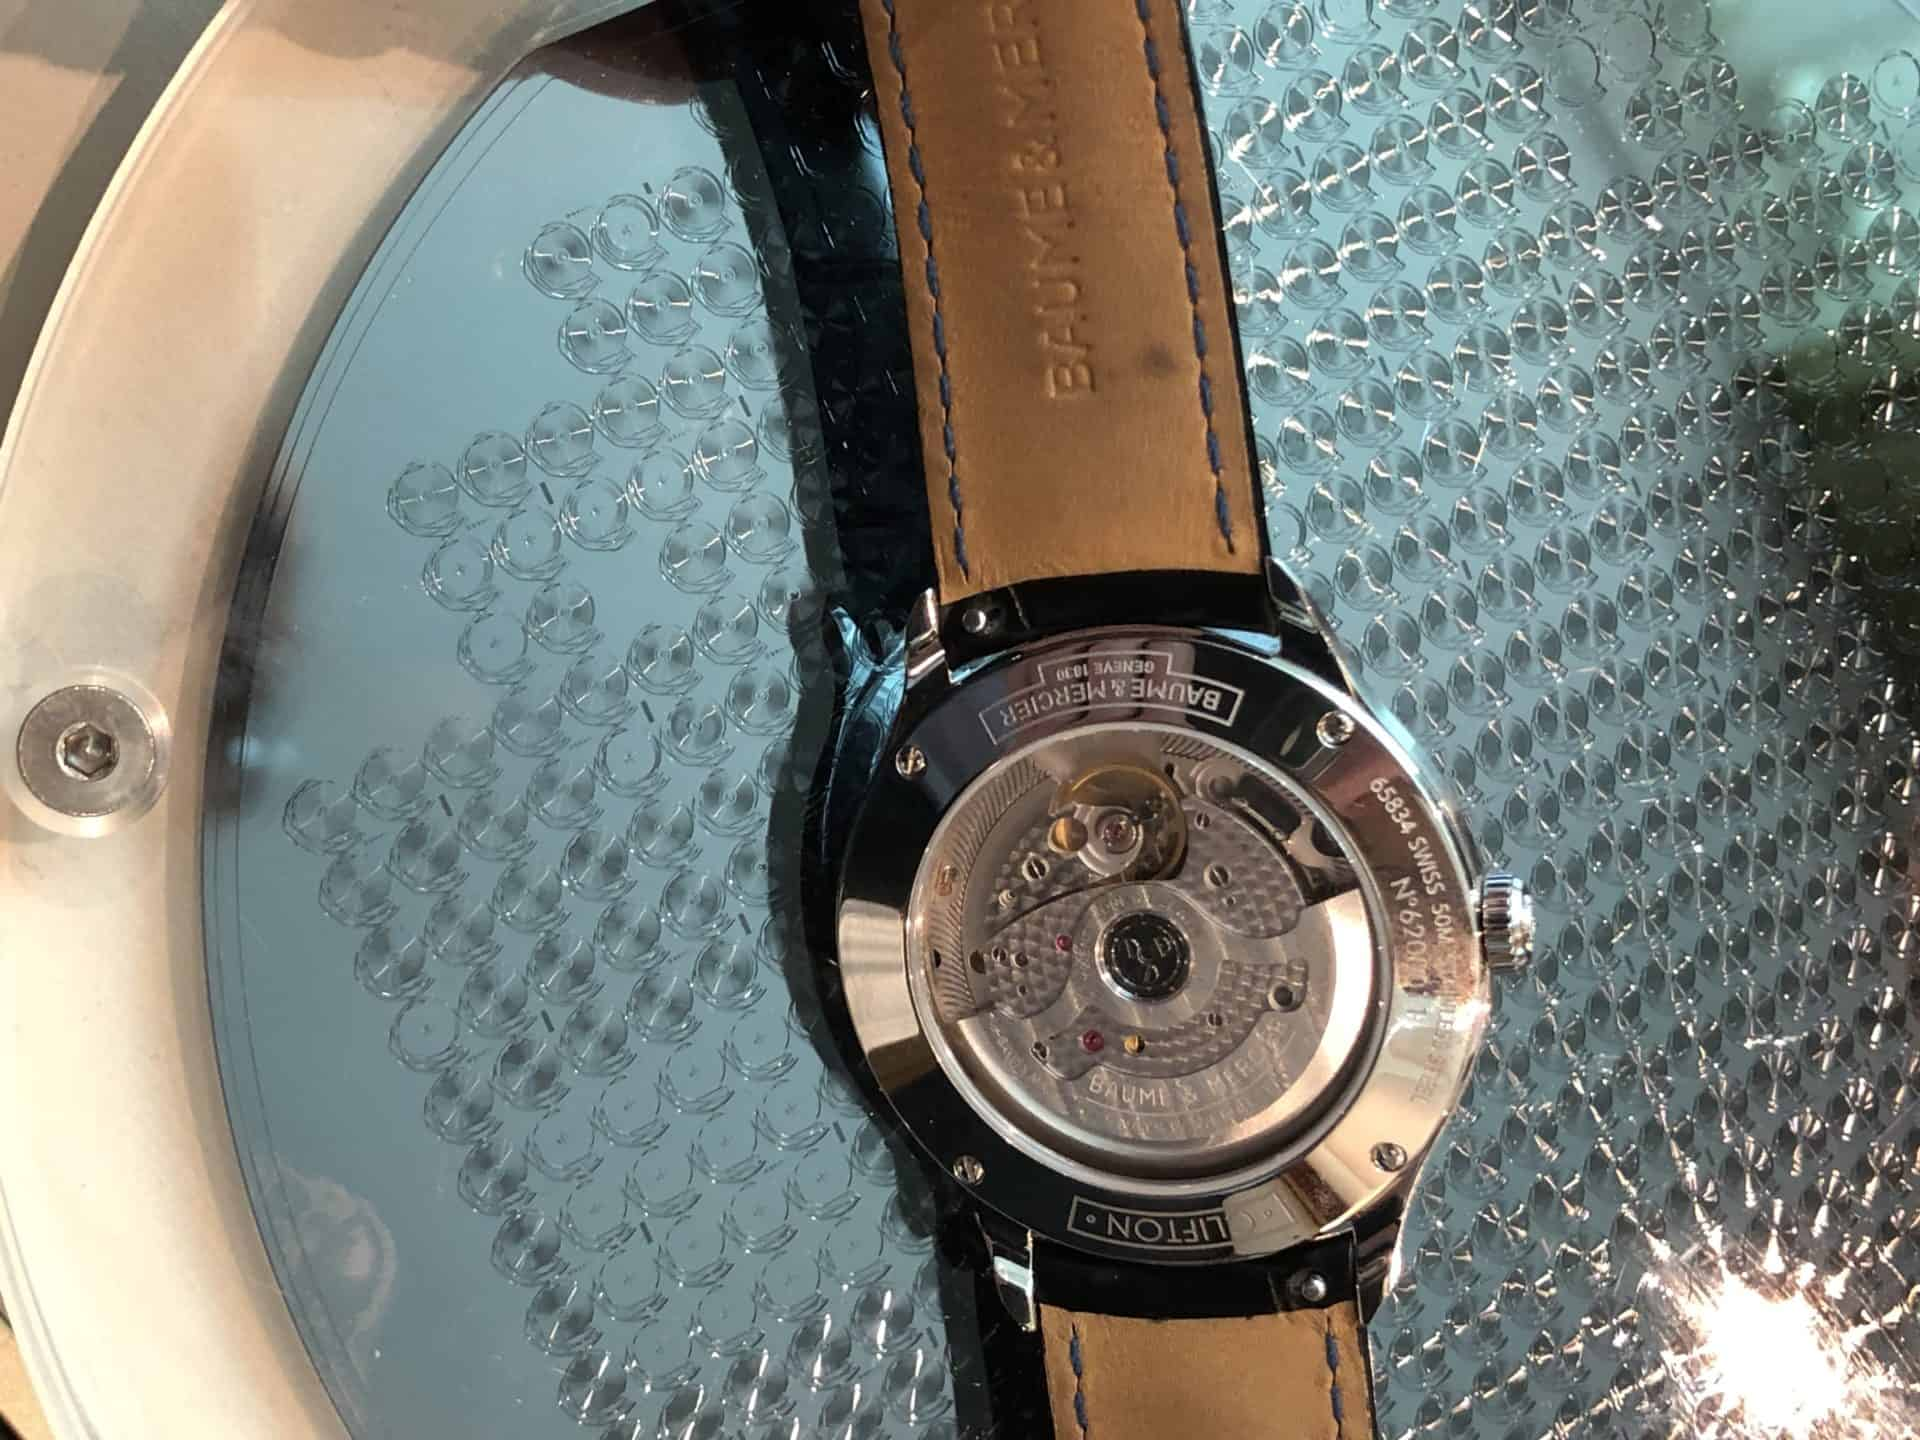 Baume Mercier Clifton Baumatic Chronometer 02a